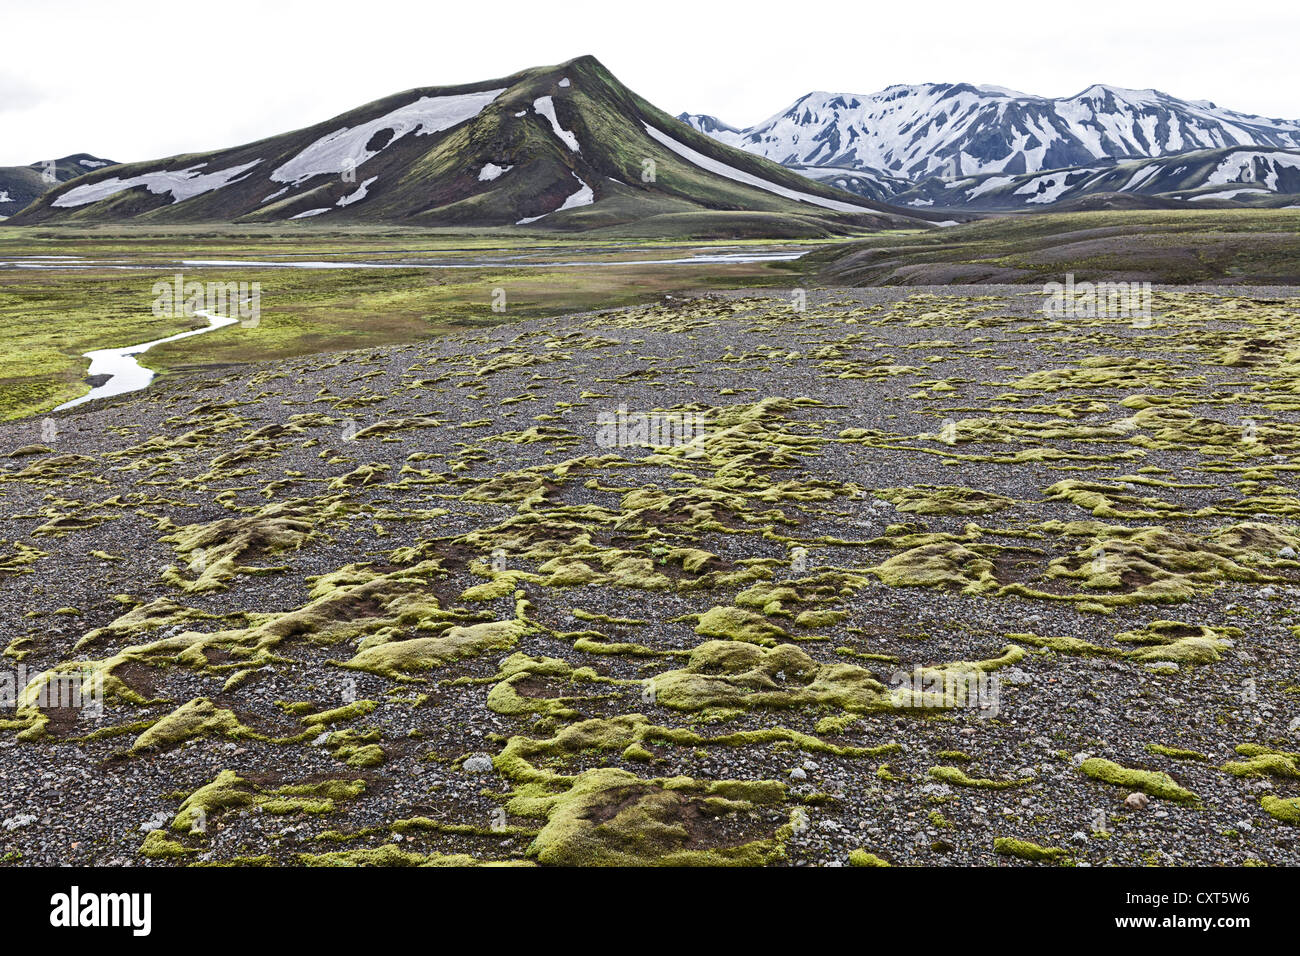 Shreds of moss covered the lava surfaces on a plateau in Fjallabak Nature Reserve, Highlands, Iceland, Europe Stock Photo